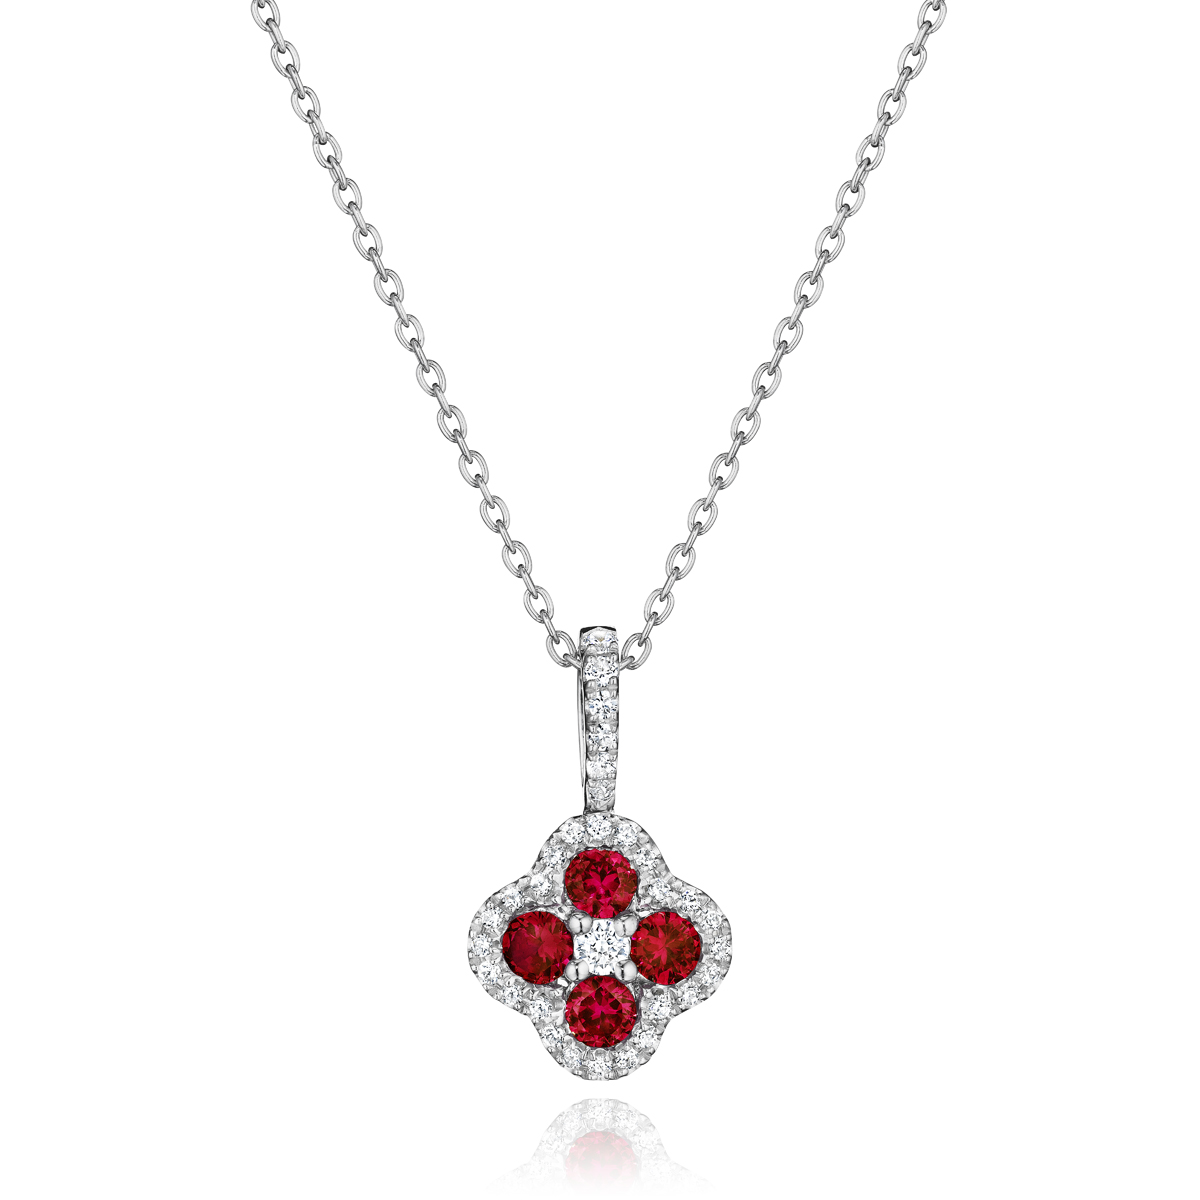 Front & Center Ruby and Diamond Cluster Pendant - This front & center ruby and diamond cluster pendant comes in a variety of material types like 14k white gold, yellow gold, rose gold and can be customized with your jeweler. Fana gemstone earrings are perfect for that special woman in your life.